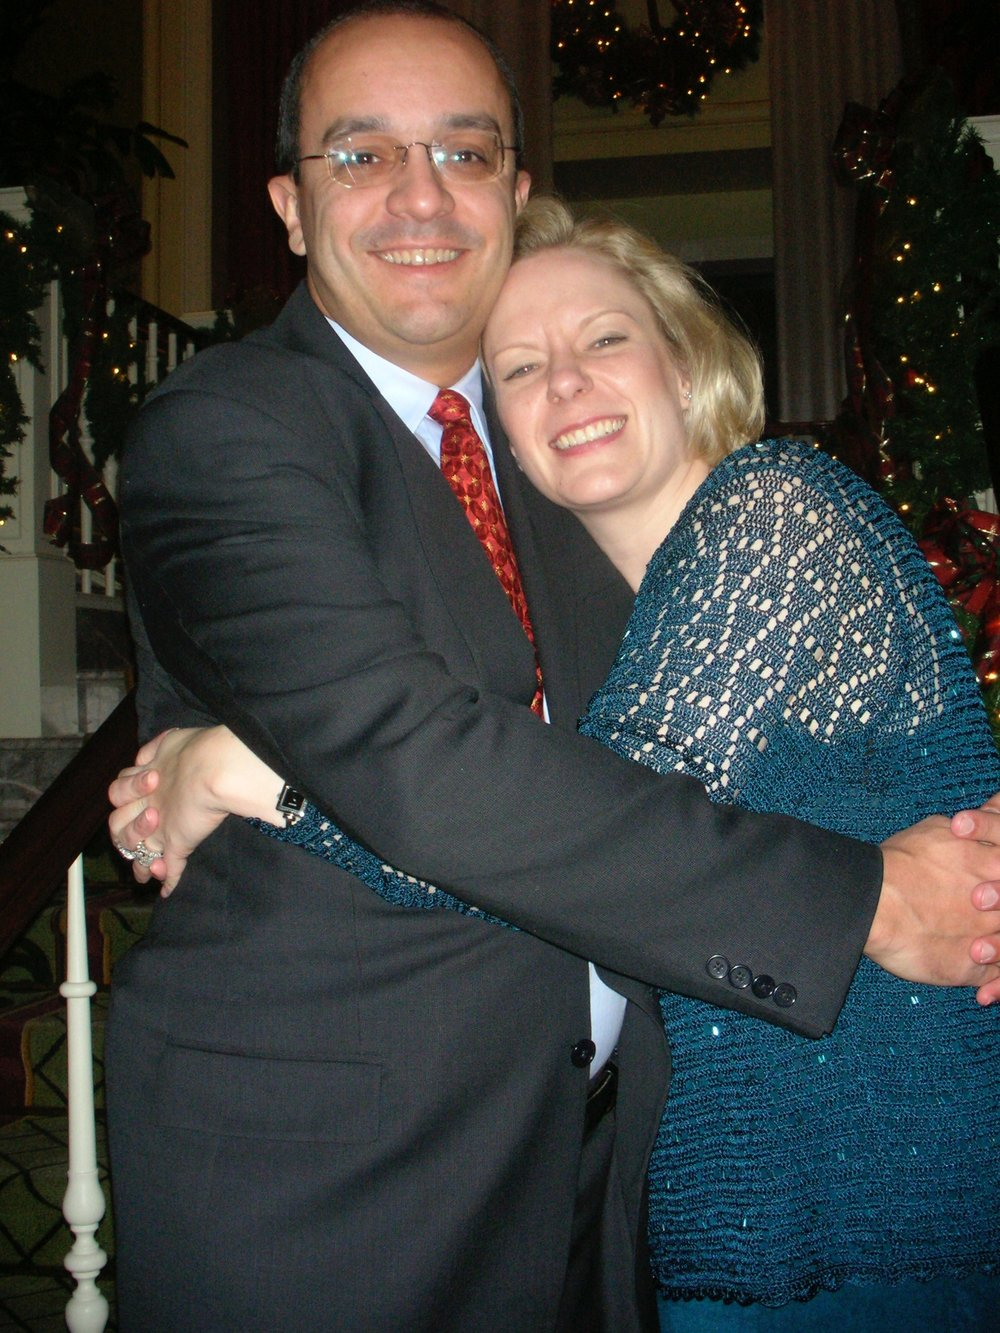 My father and my stepmom Kristen, all cute and everything at Christmastime.